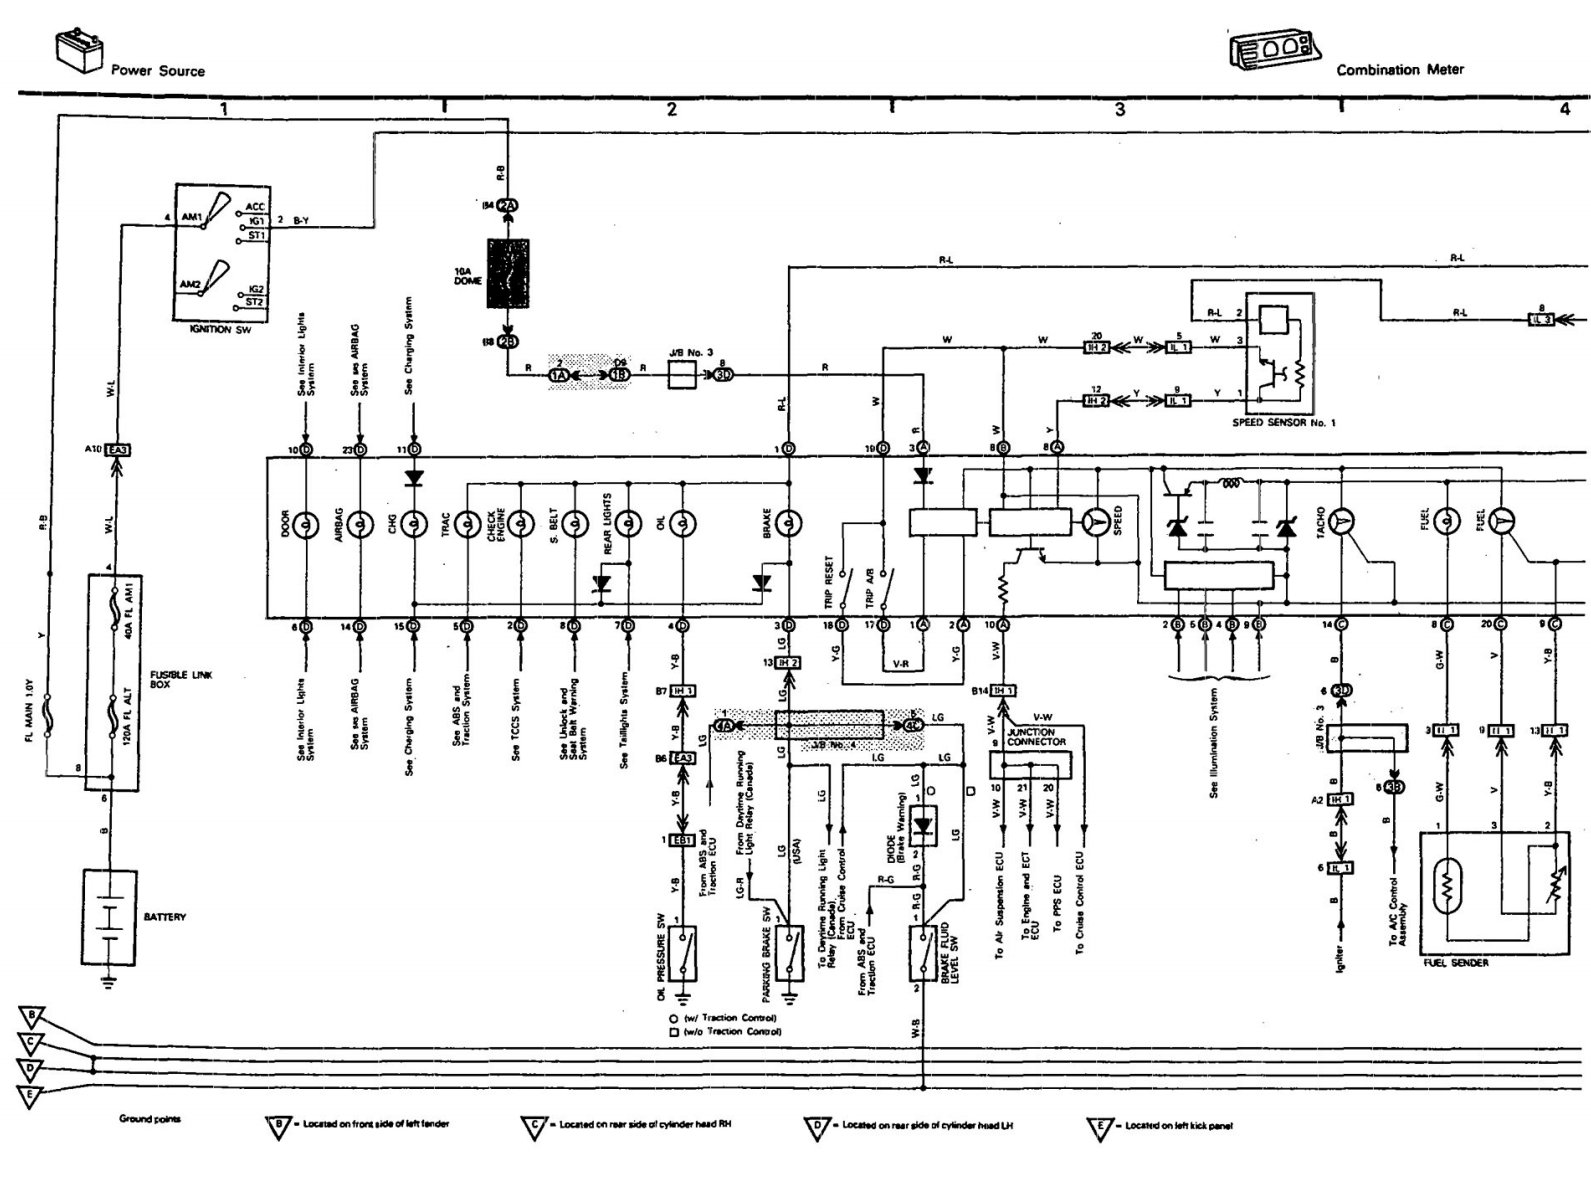 wiring diagram for 1993 lexus gs300 wiring diagrams93 lexus gs300 wiring diagram wiring diagram schematic lexus gs300 performance 1993 lexus gs300 wiring diagram